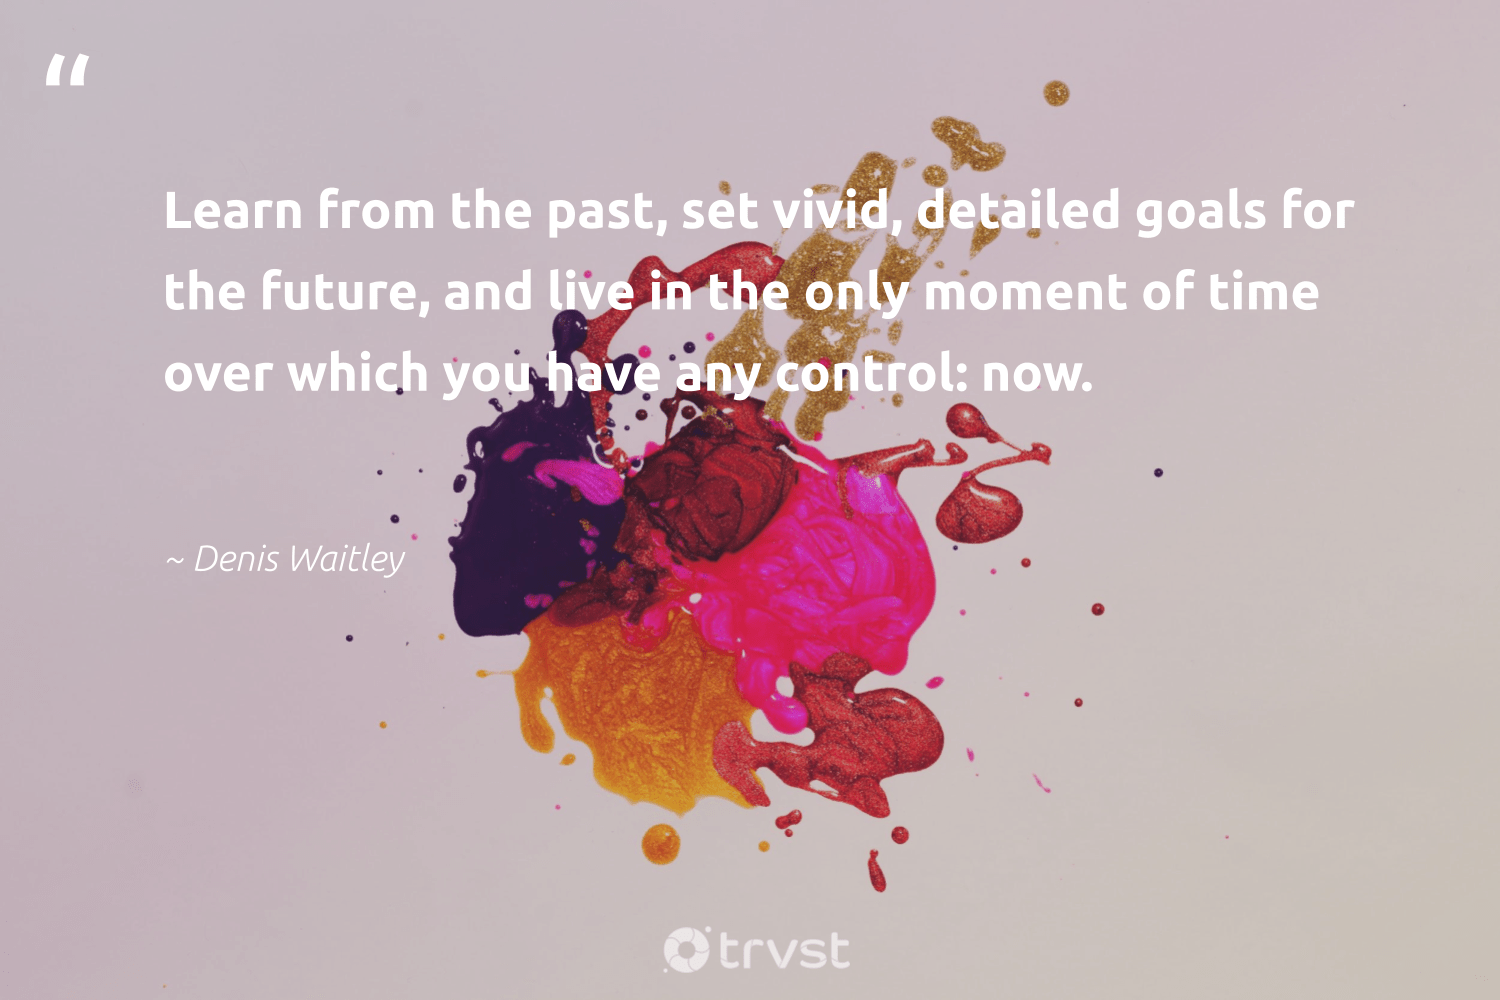 """""""Learn from the past, set vivid, detailed goals for the future, and live in the only moment of time over which you have any control: now.""""  - Denis Waitley #trvst #quotes #goals #mindset #futureofwork #begreat #impact #mindfulness #nevergiveup #health #bethechange #meditate"""